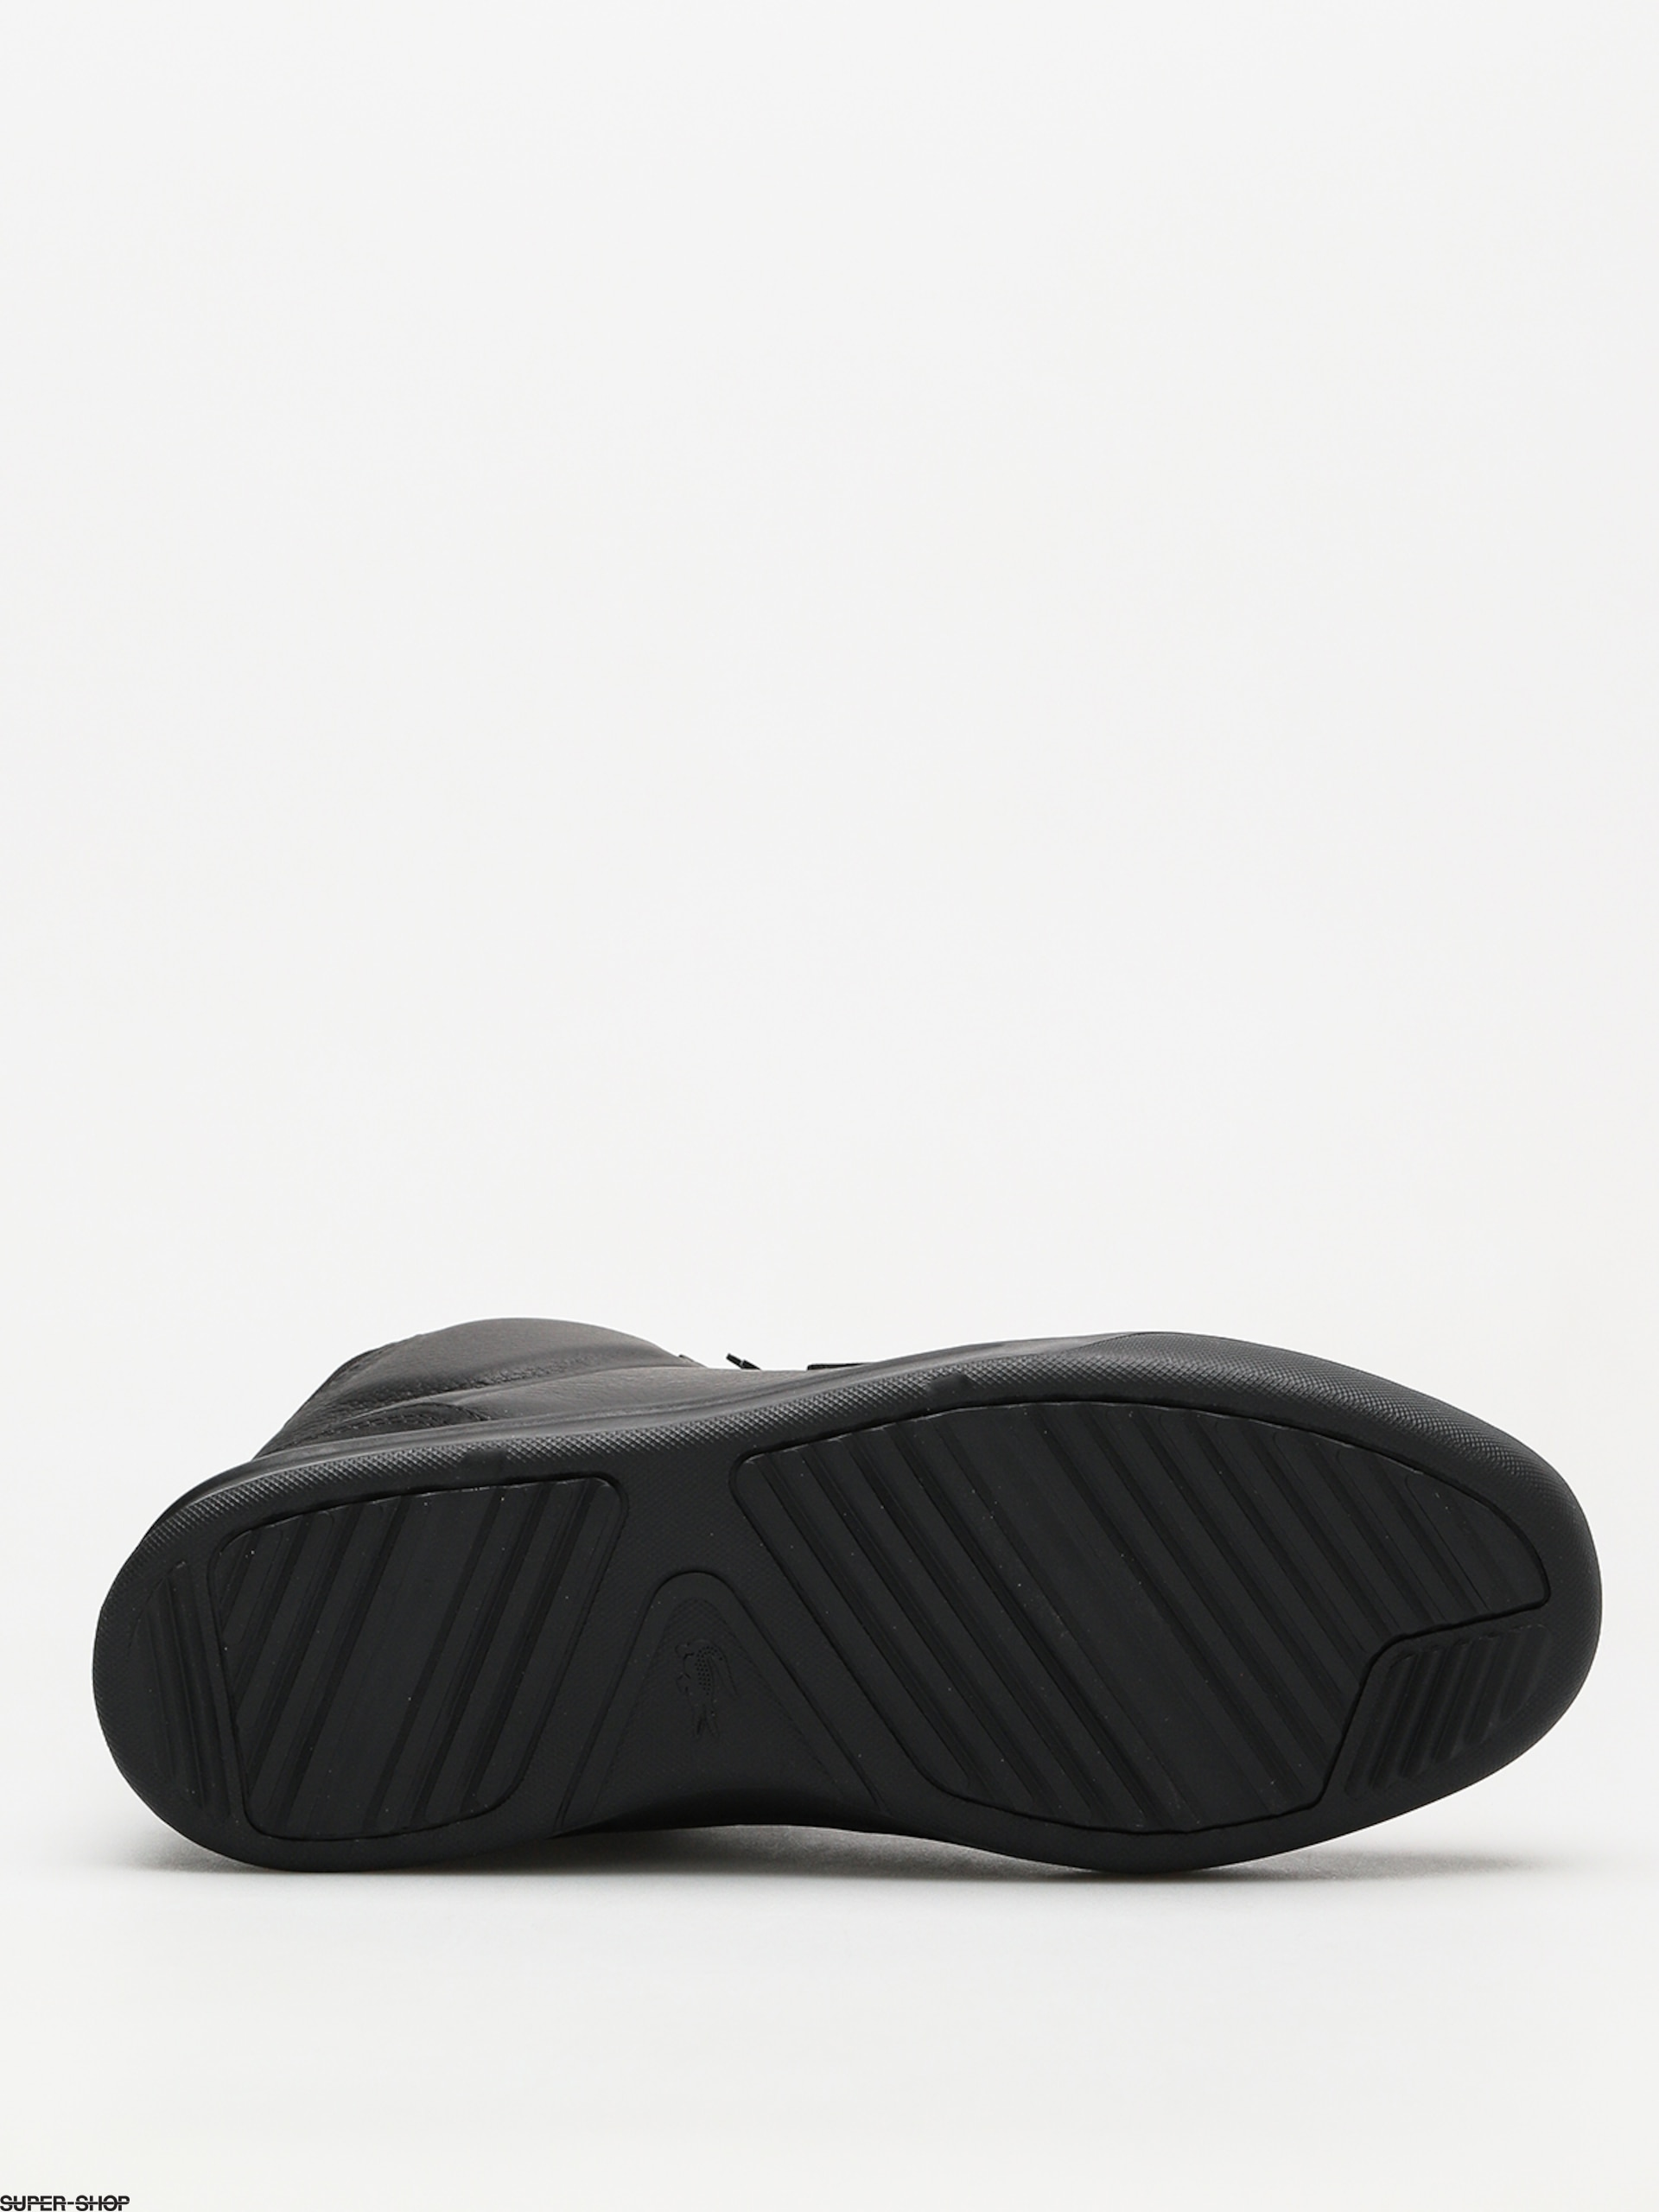 a51895e9a19e80 Lacoste shoes explorateur classic black jpg 1200x1600 Lacoste classic shoes